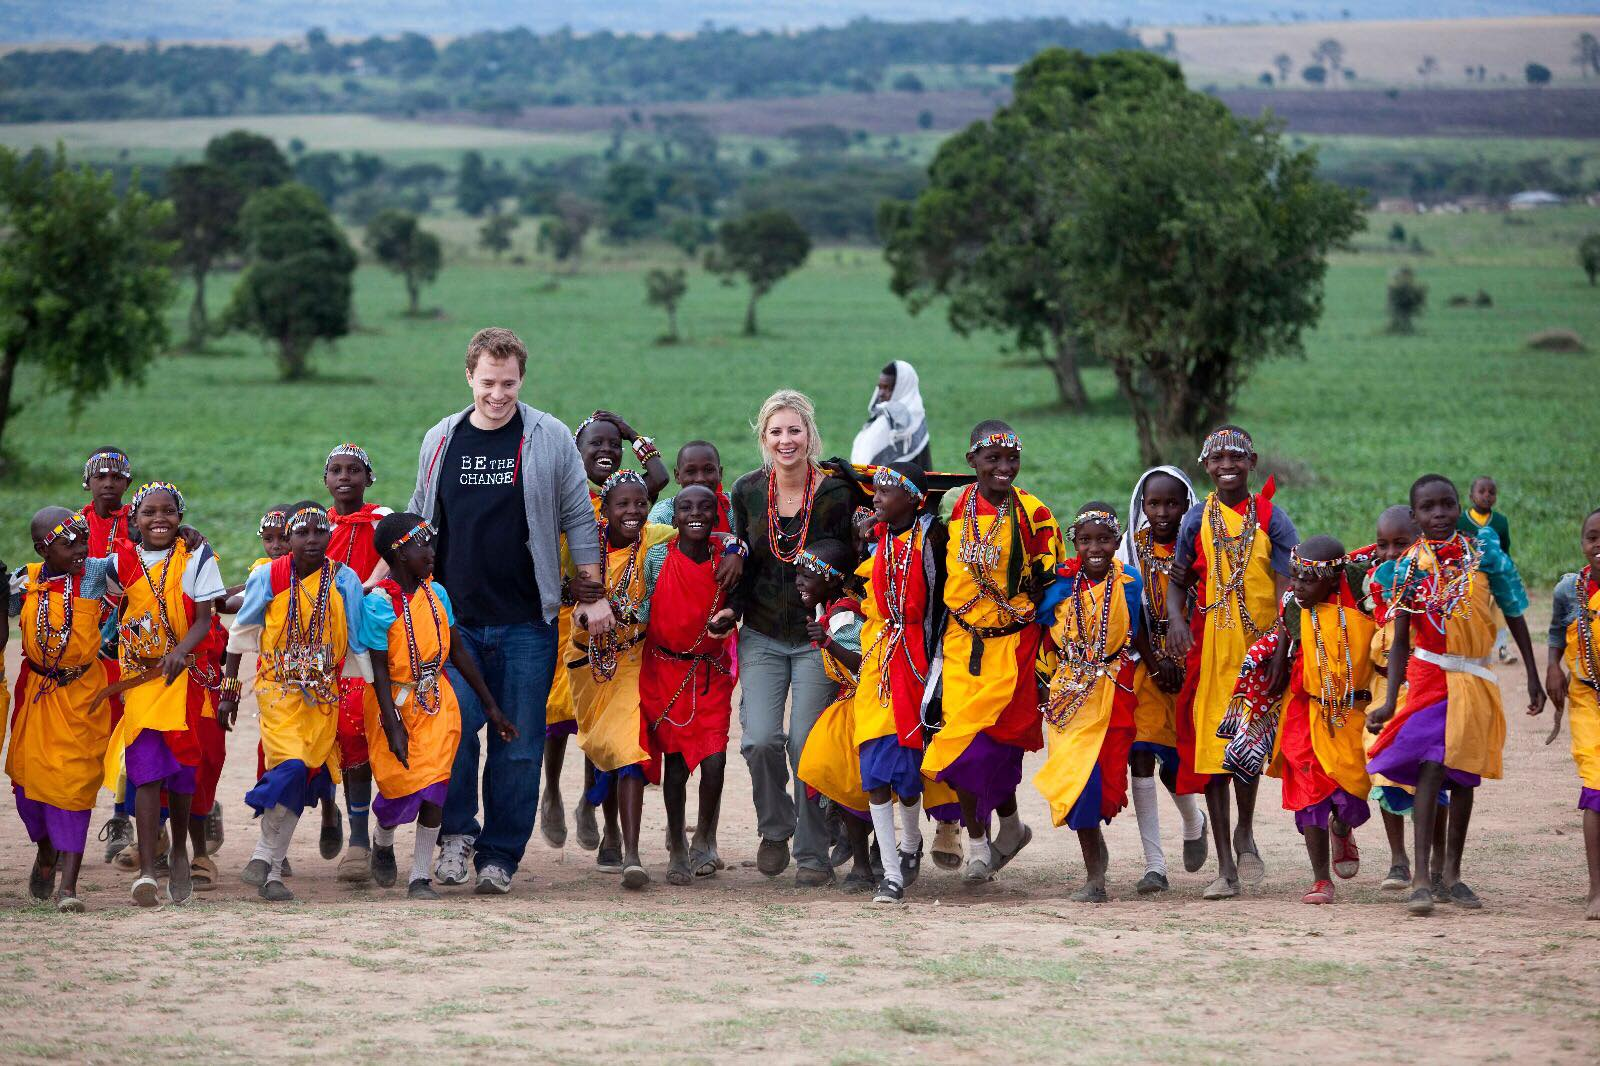 Holly Branson in Kenya walking with children from the Maasai Mara